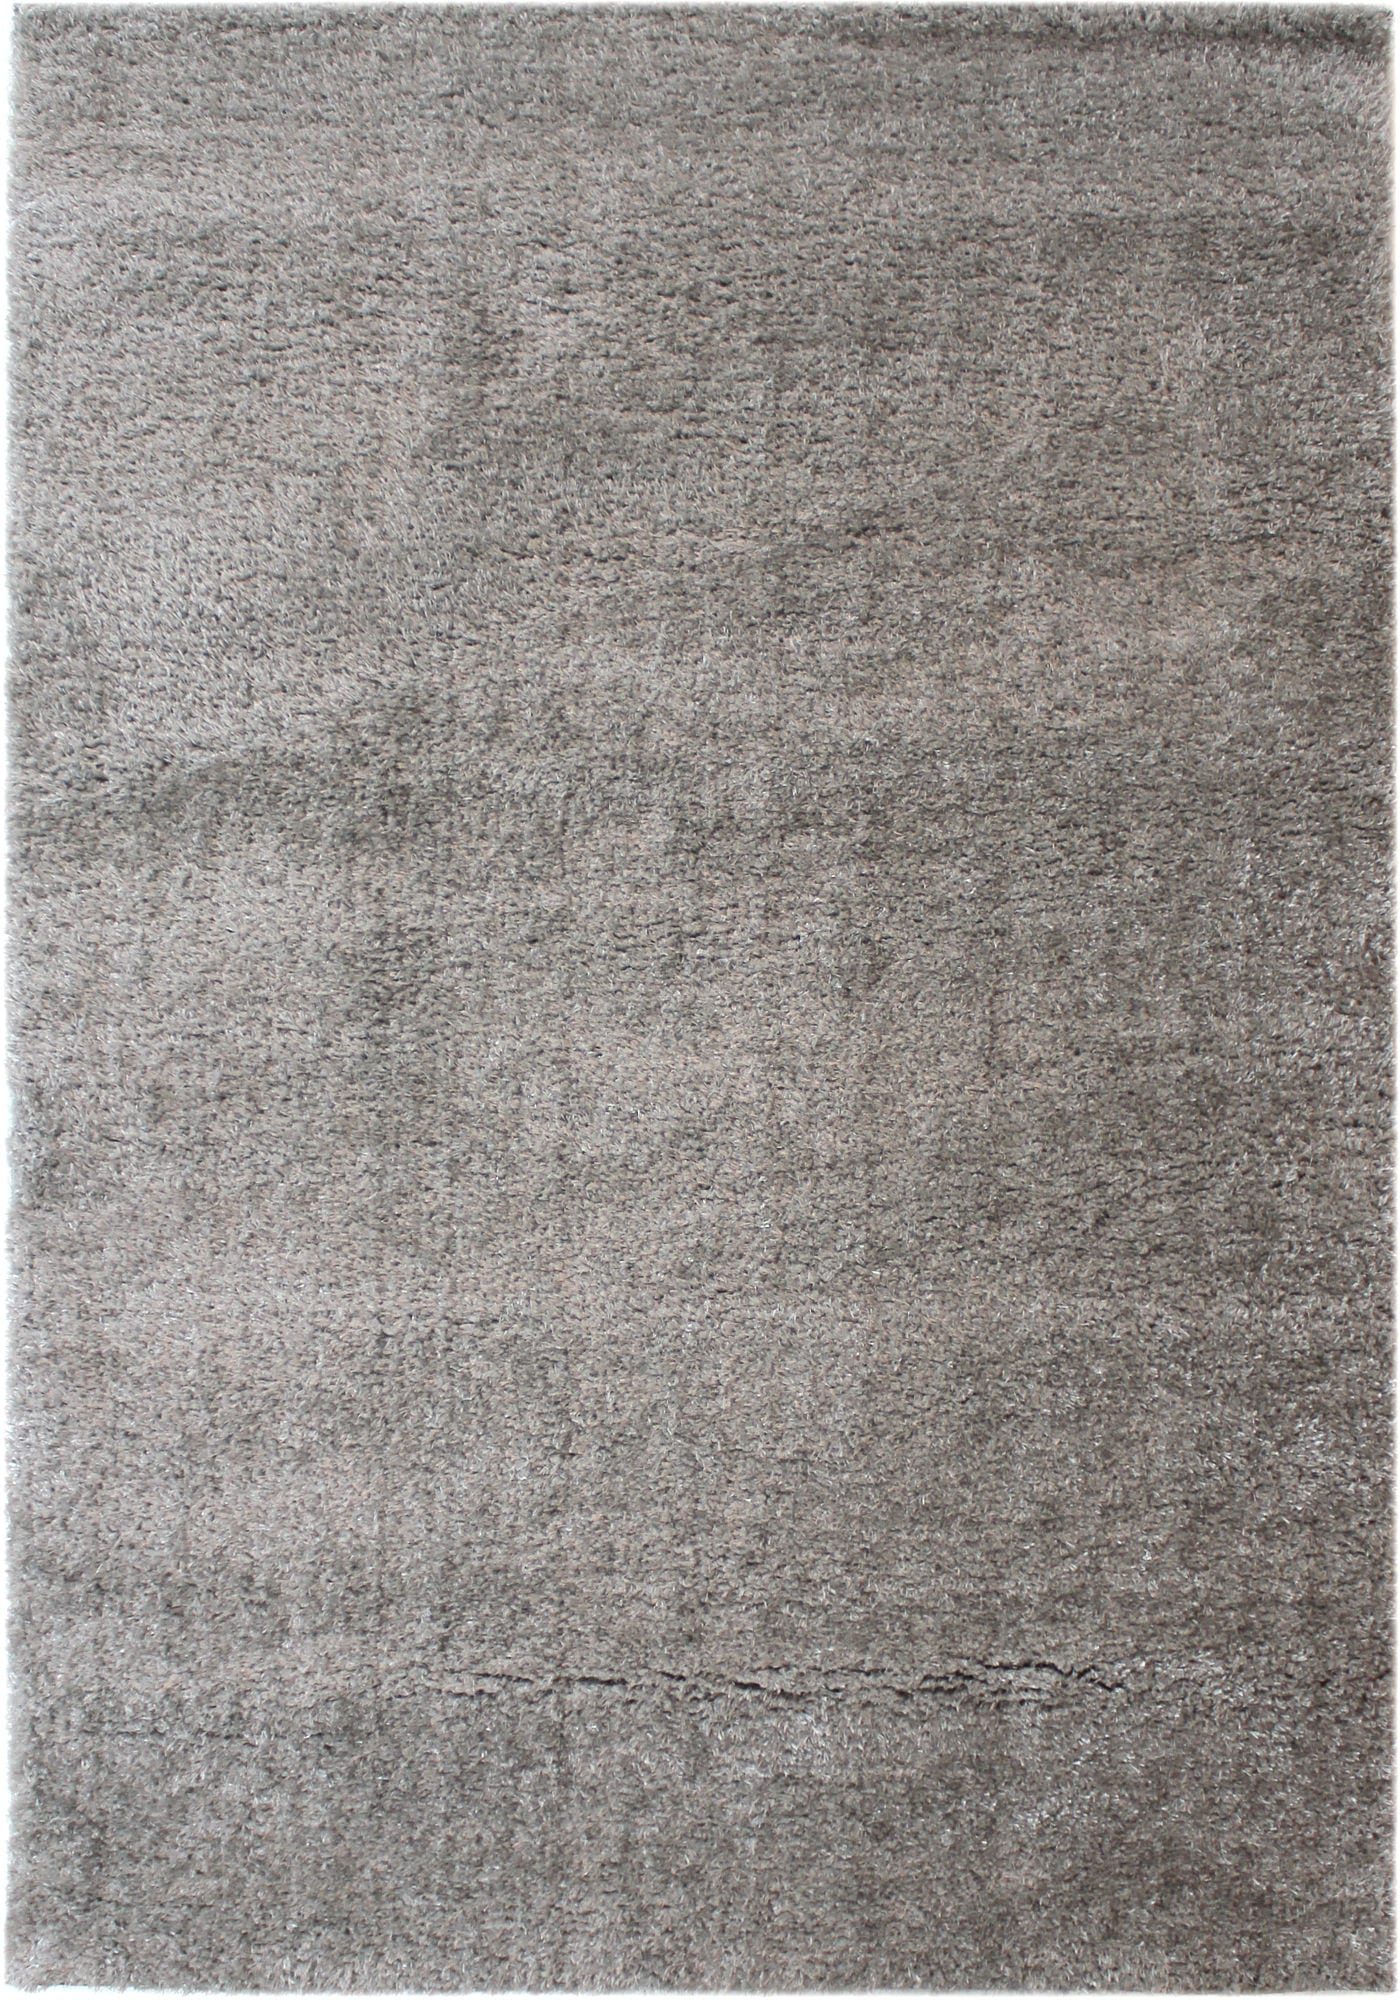 Velvet Rug By Flair Rugs Colour Silver Rugs Uk